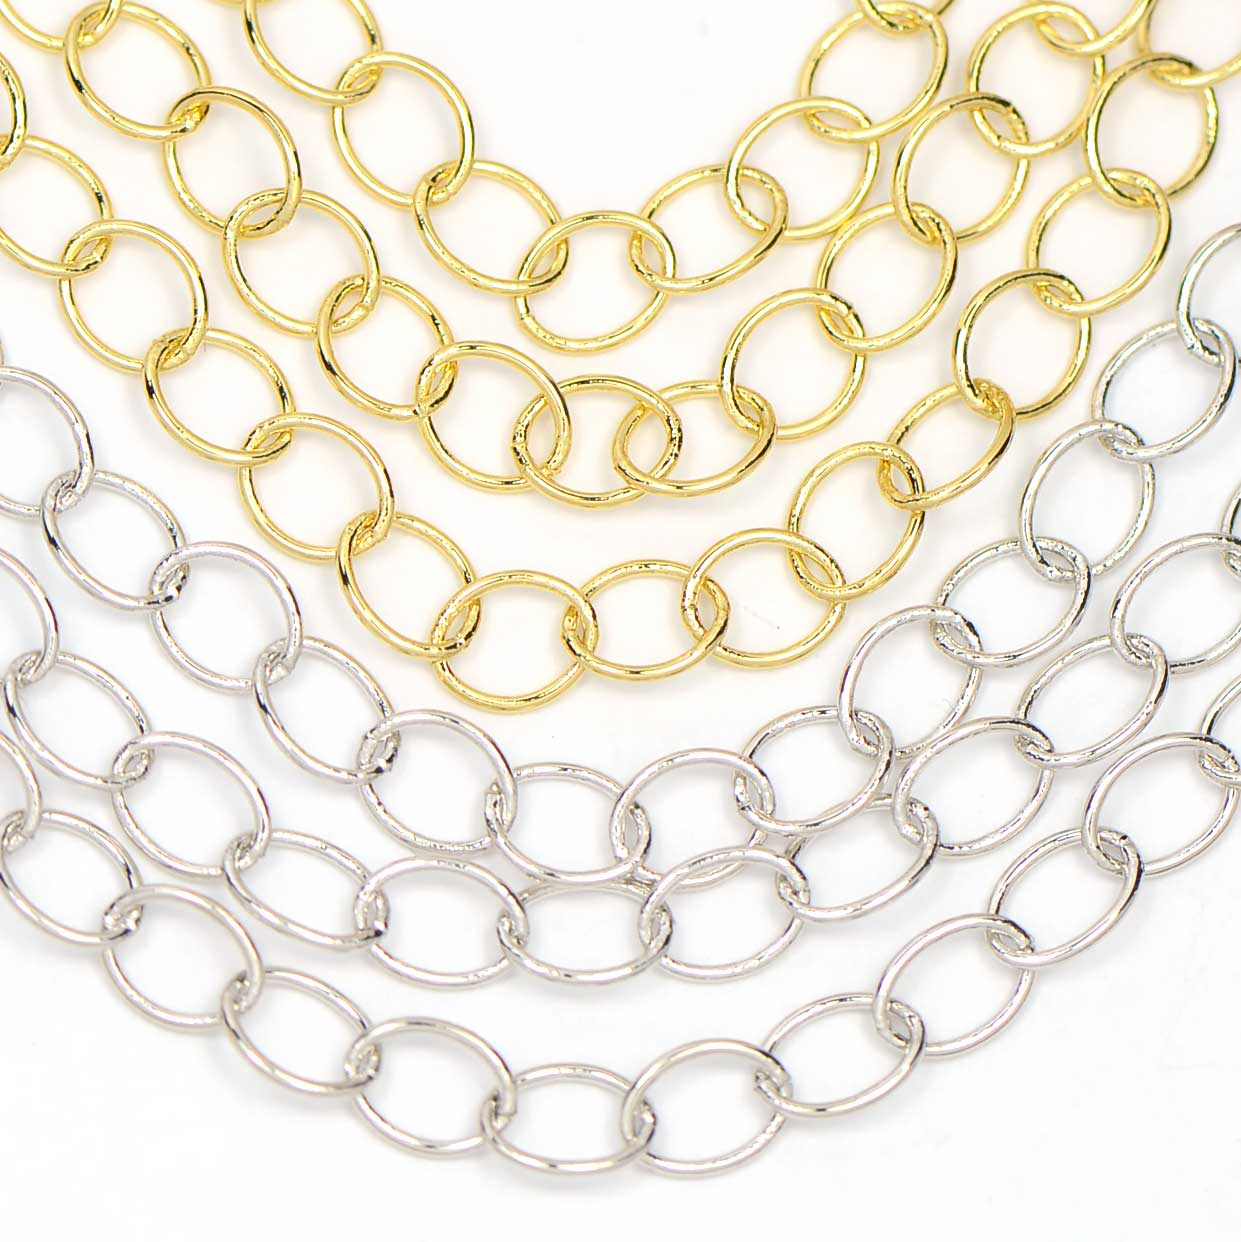 Chain 0008: Classic 5x6mm Oval Link Cable Chain